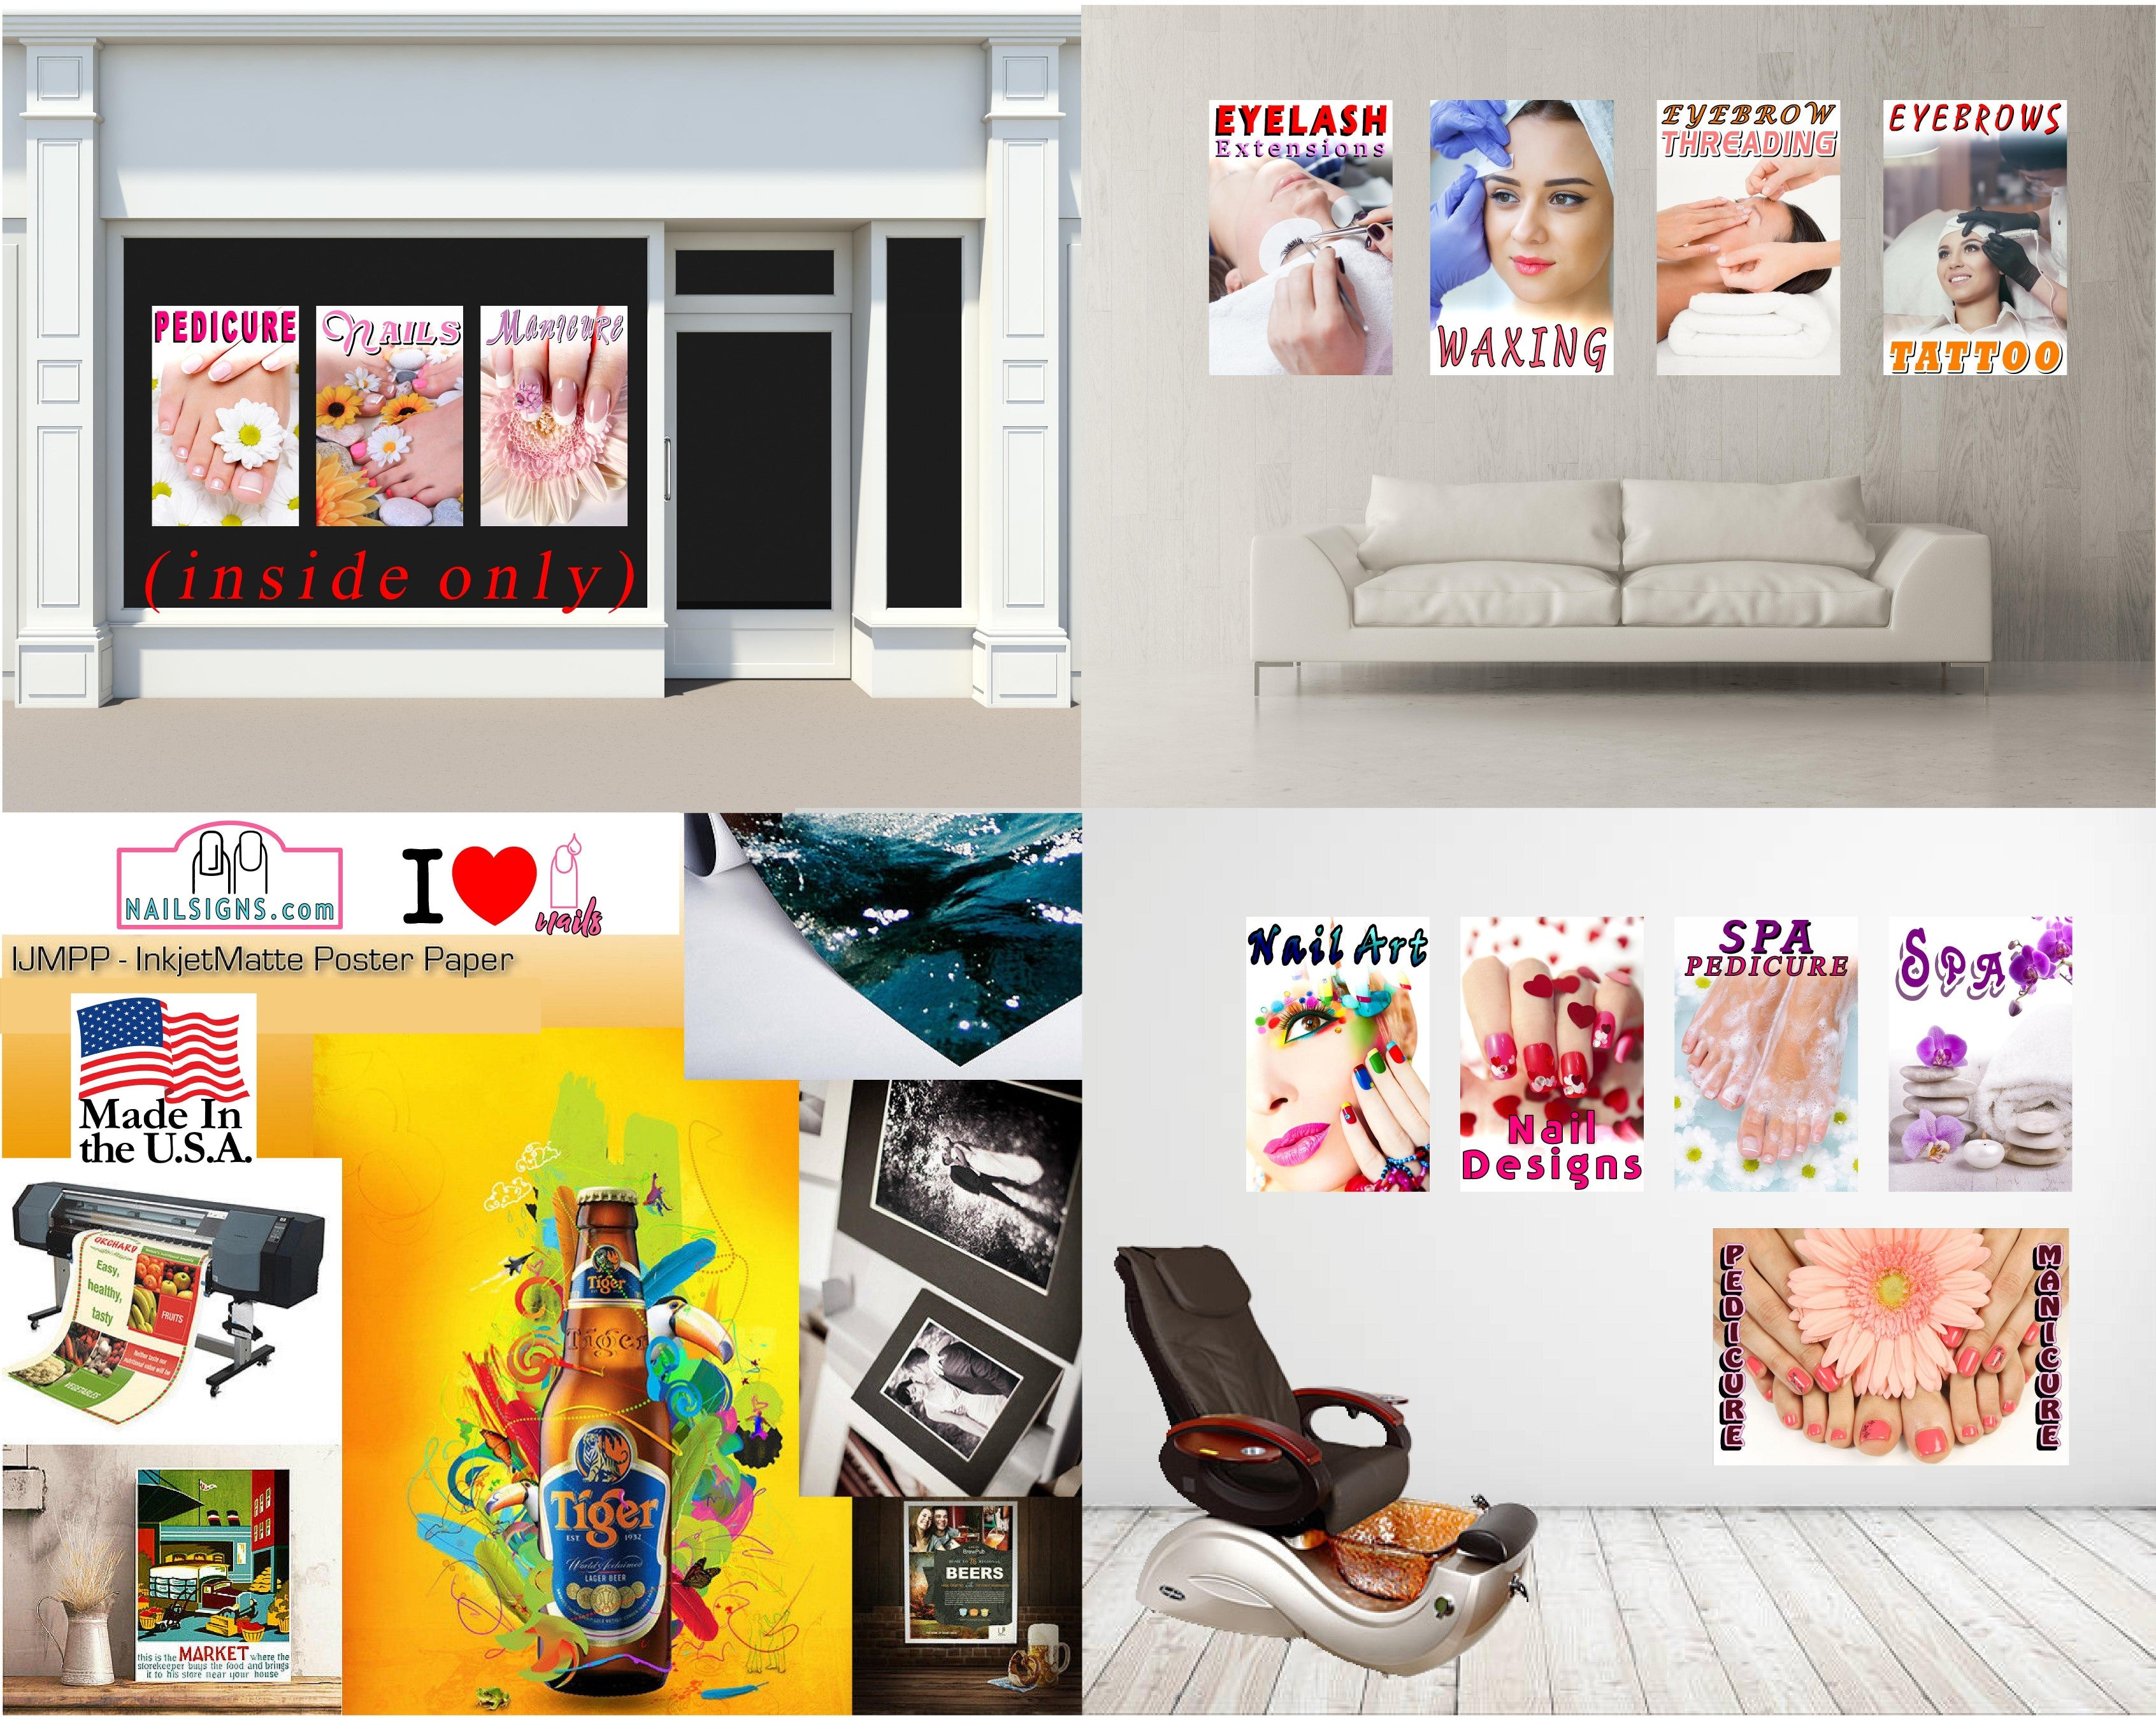 Pedicure 17 Photo-Realistic Paper Poster Premium Matte Interior Inside Sign Advertising Marketing Wall Window Non-Laminated Horizontal